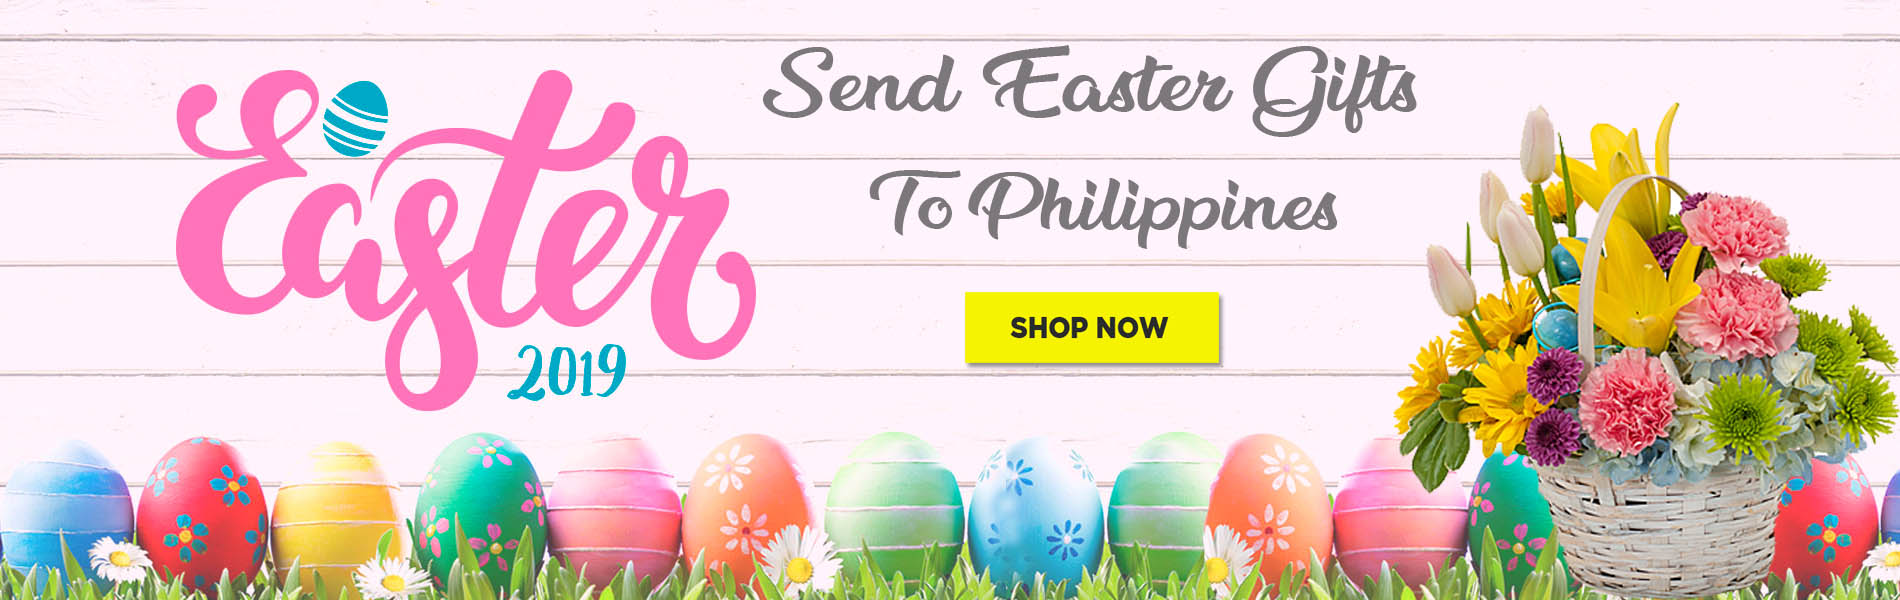 Send Easter Gifts To Philippines